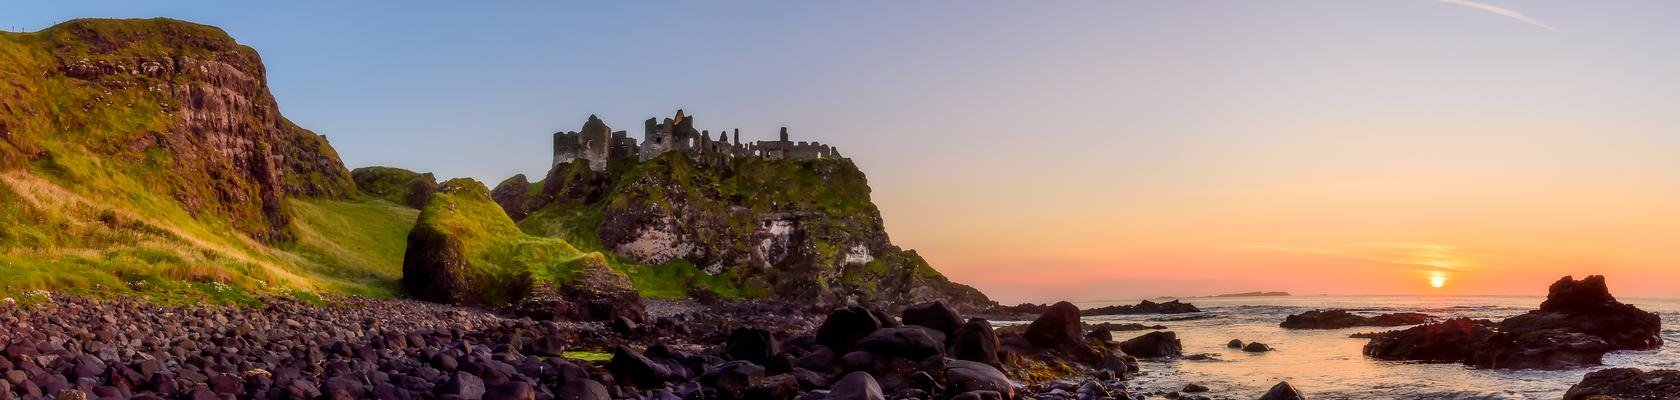 Dunluce Castle uit Game of Thrones - County Antrim